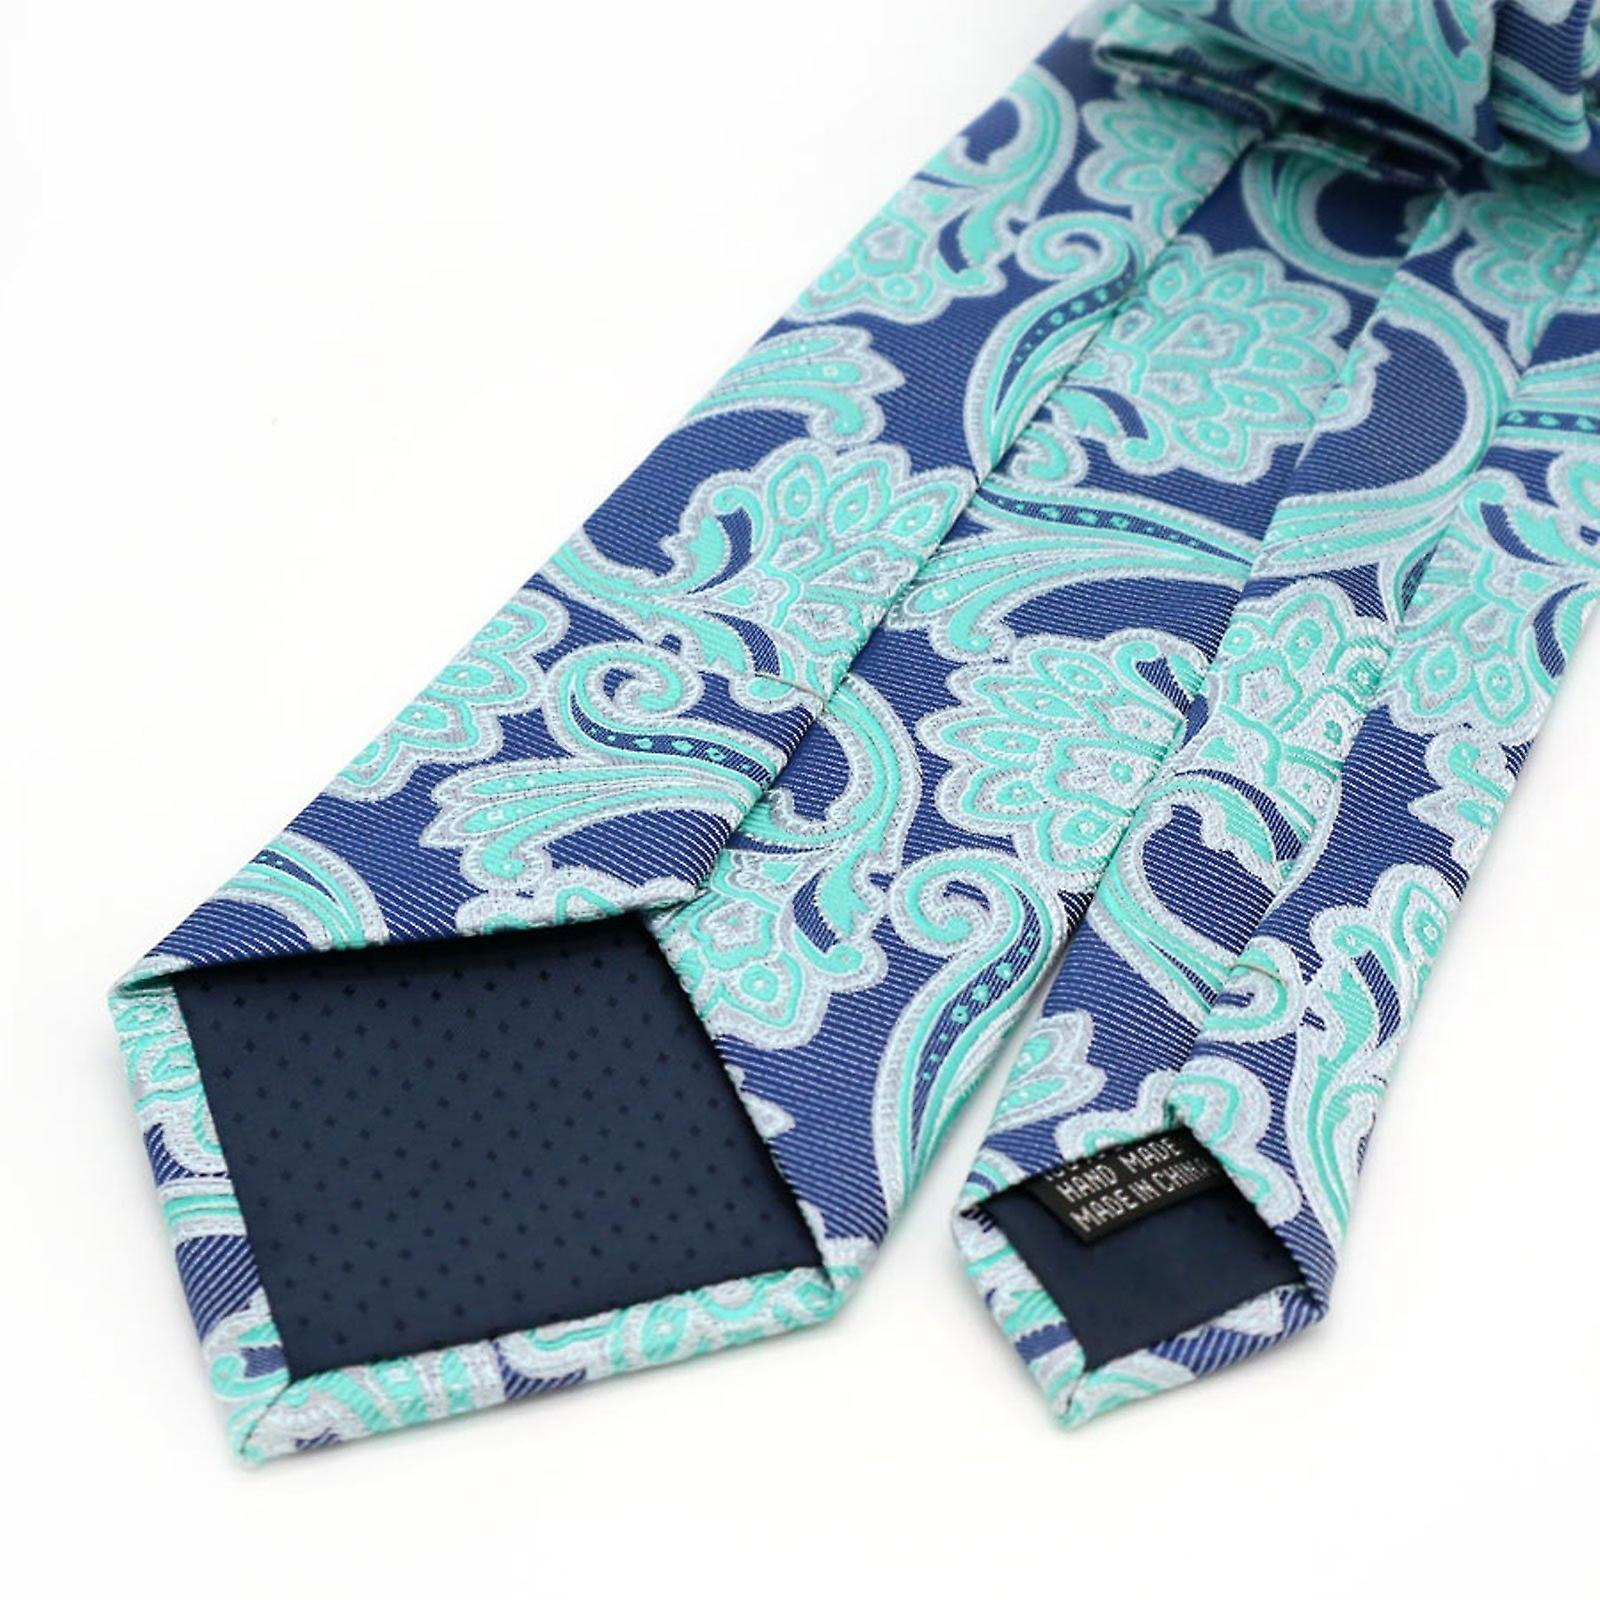 Lime green & purple pattern pocket square & tie set